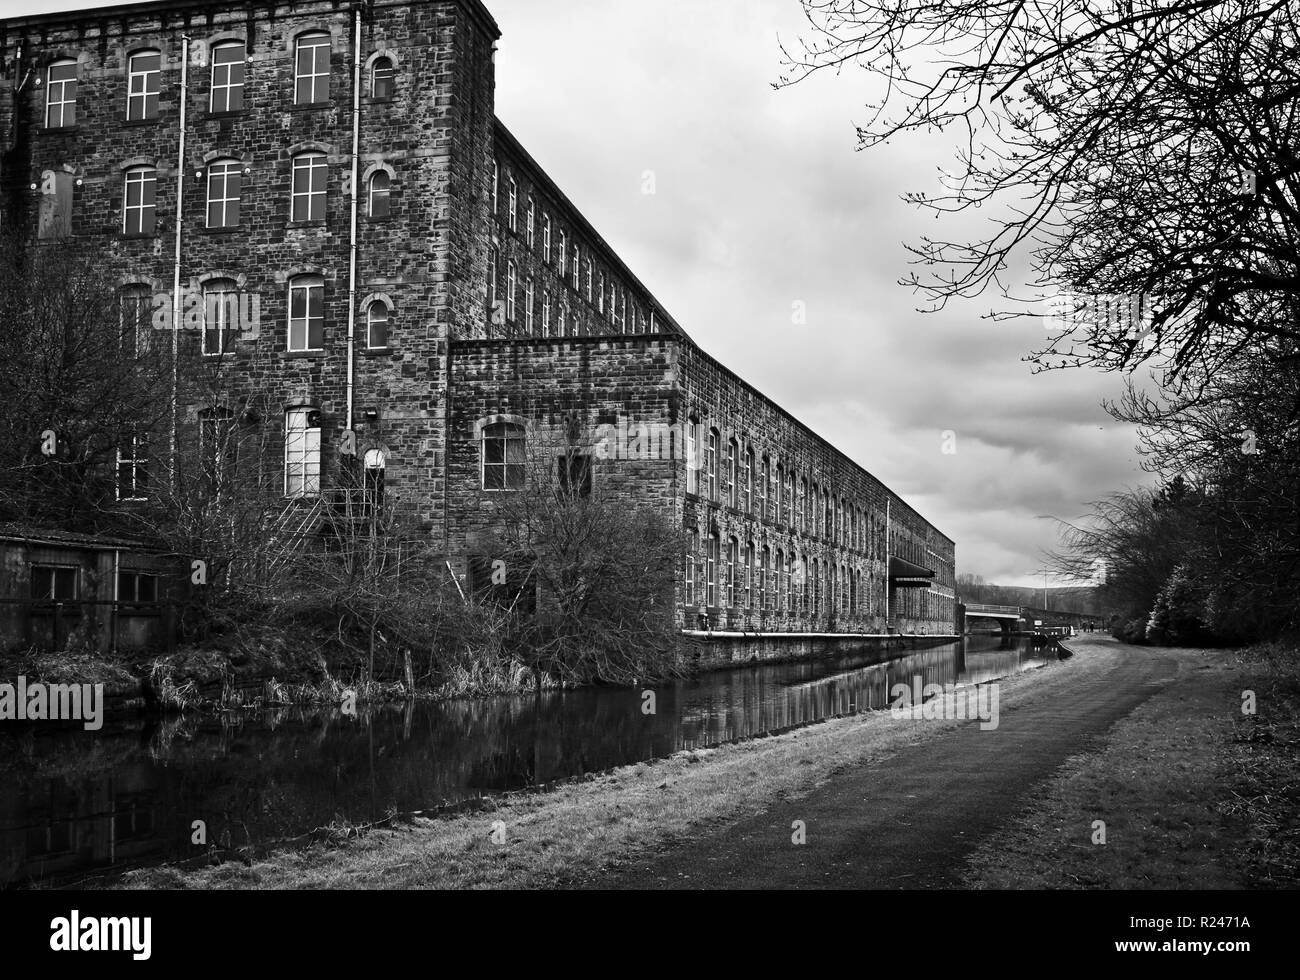 Reminiscent of dark satanic mills: Tunstill Mill, by the Leeds and Liverpool Canal, Brierfield - Stock Image